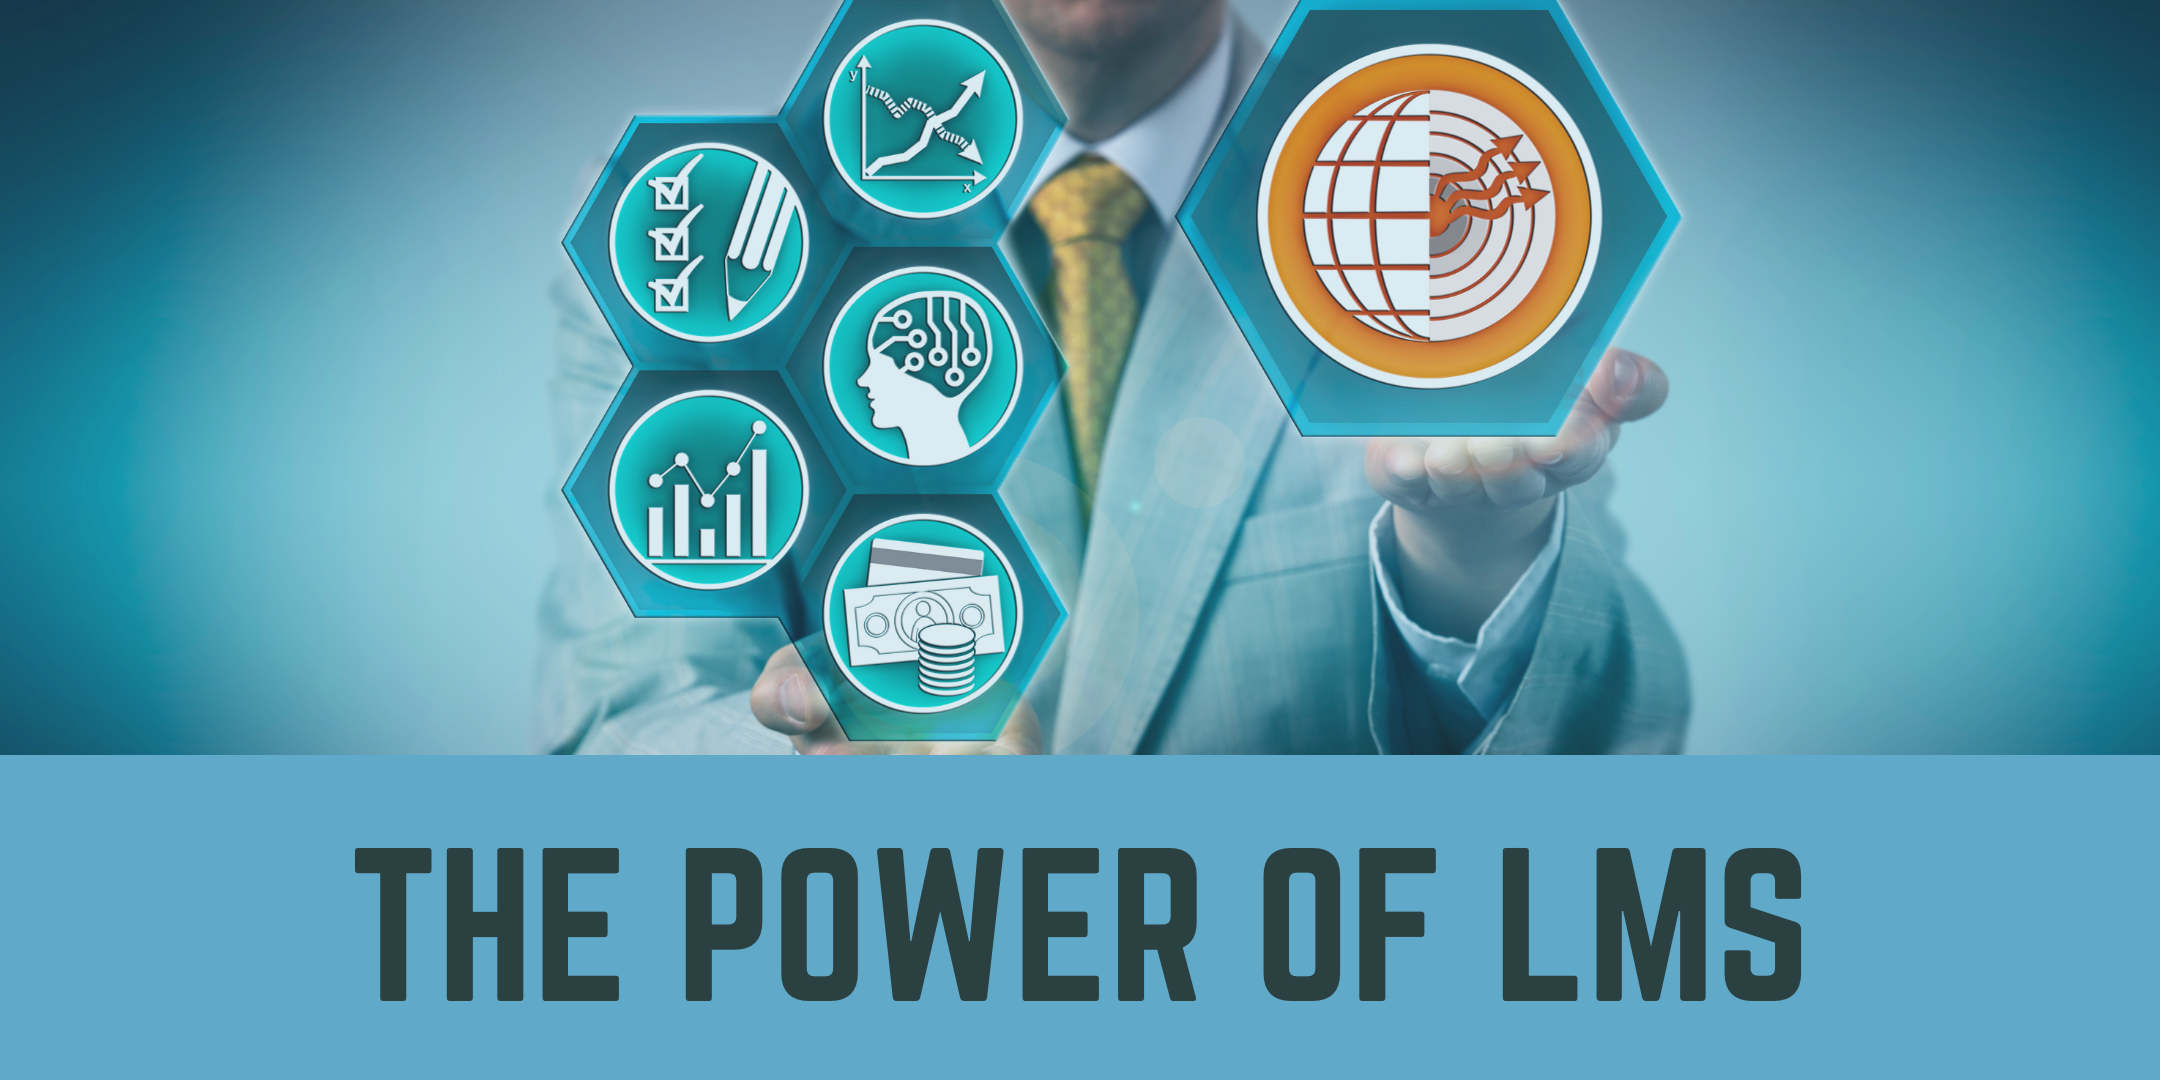 The Power of LMS